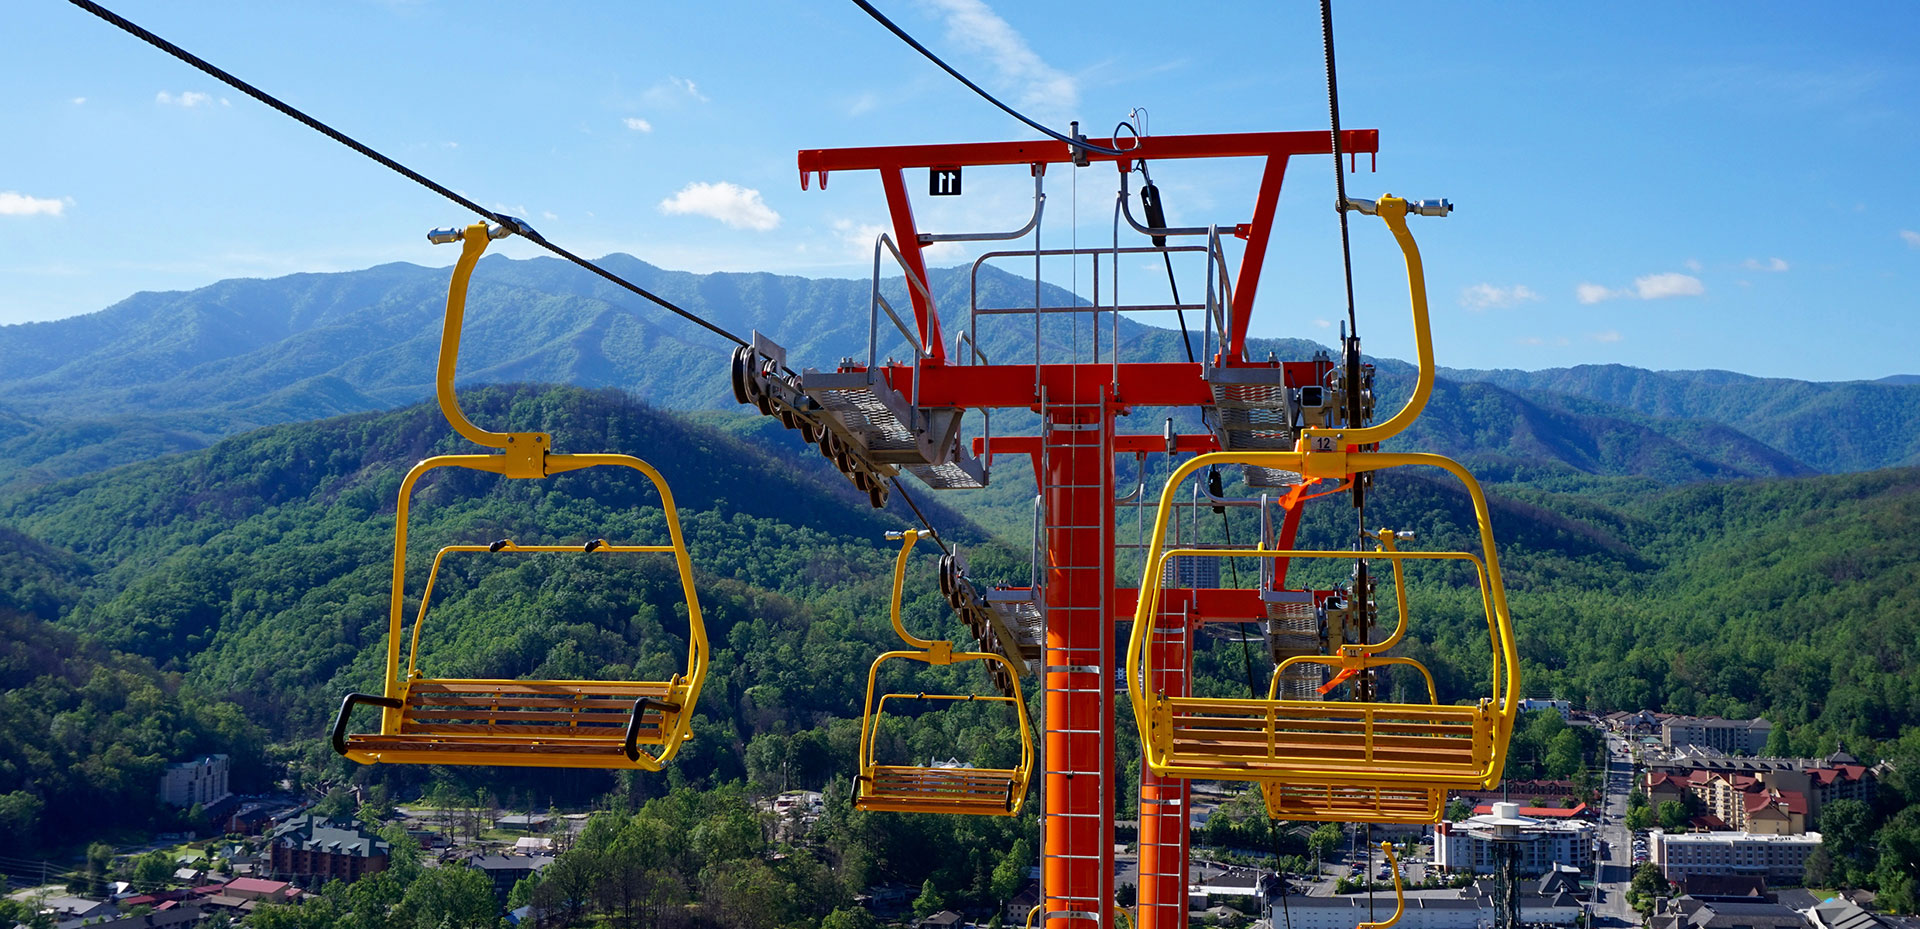 Gatlinburg SkyLift | Gatlinburg Attractions | Things To Do In Gatlinburg, TN